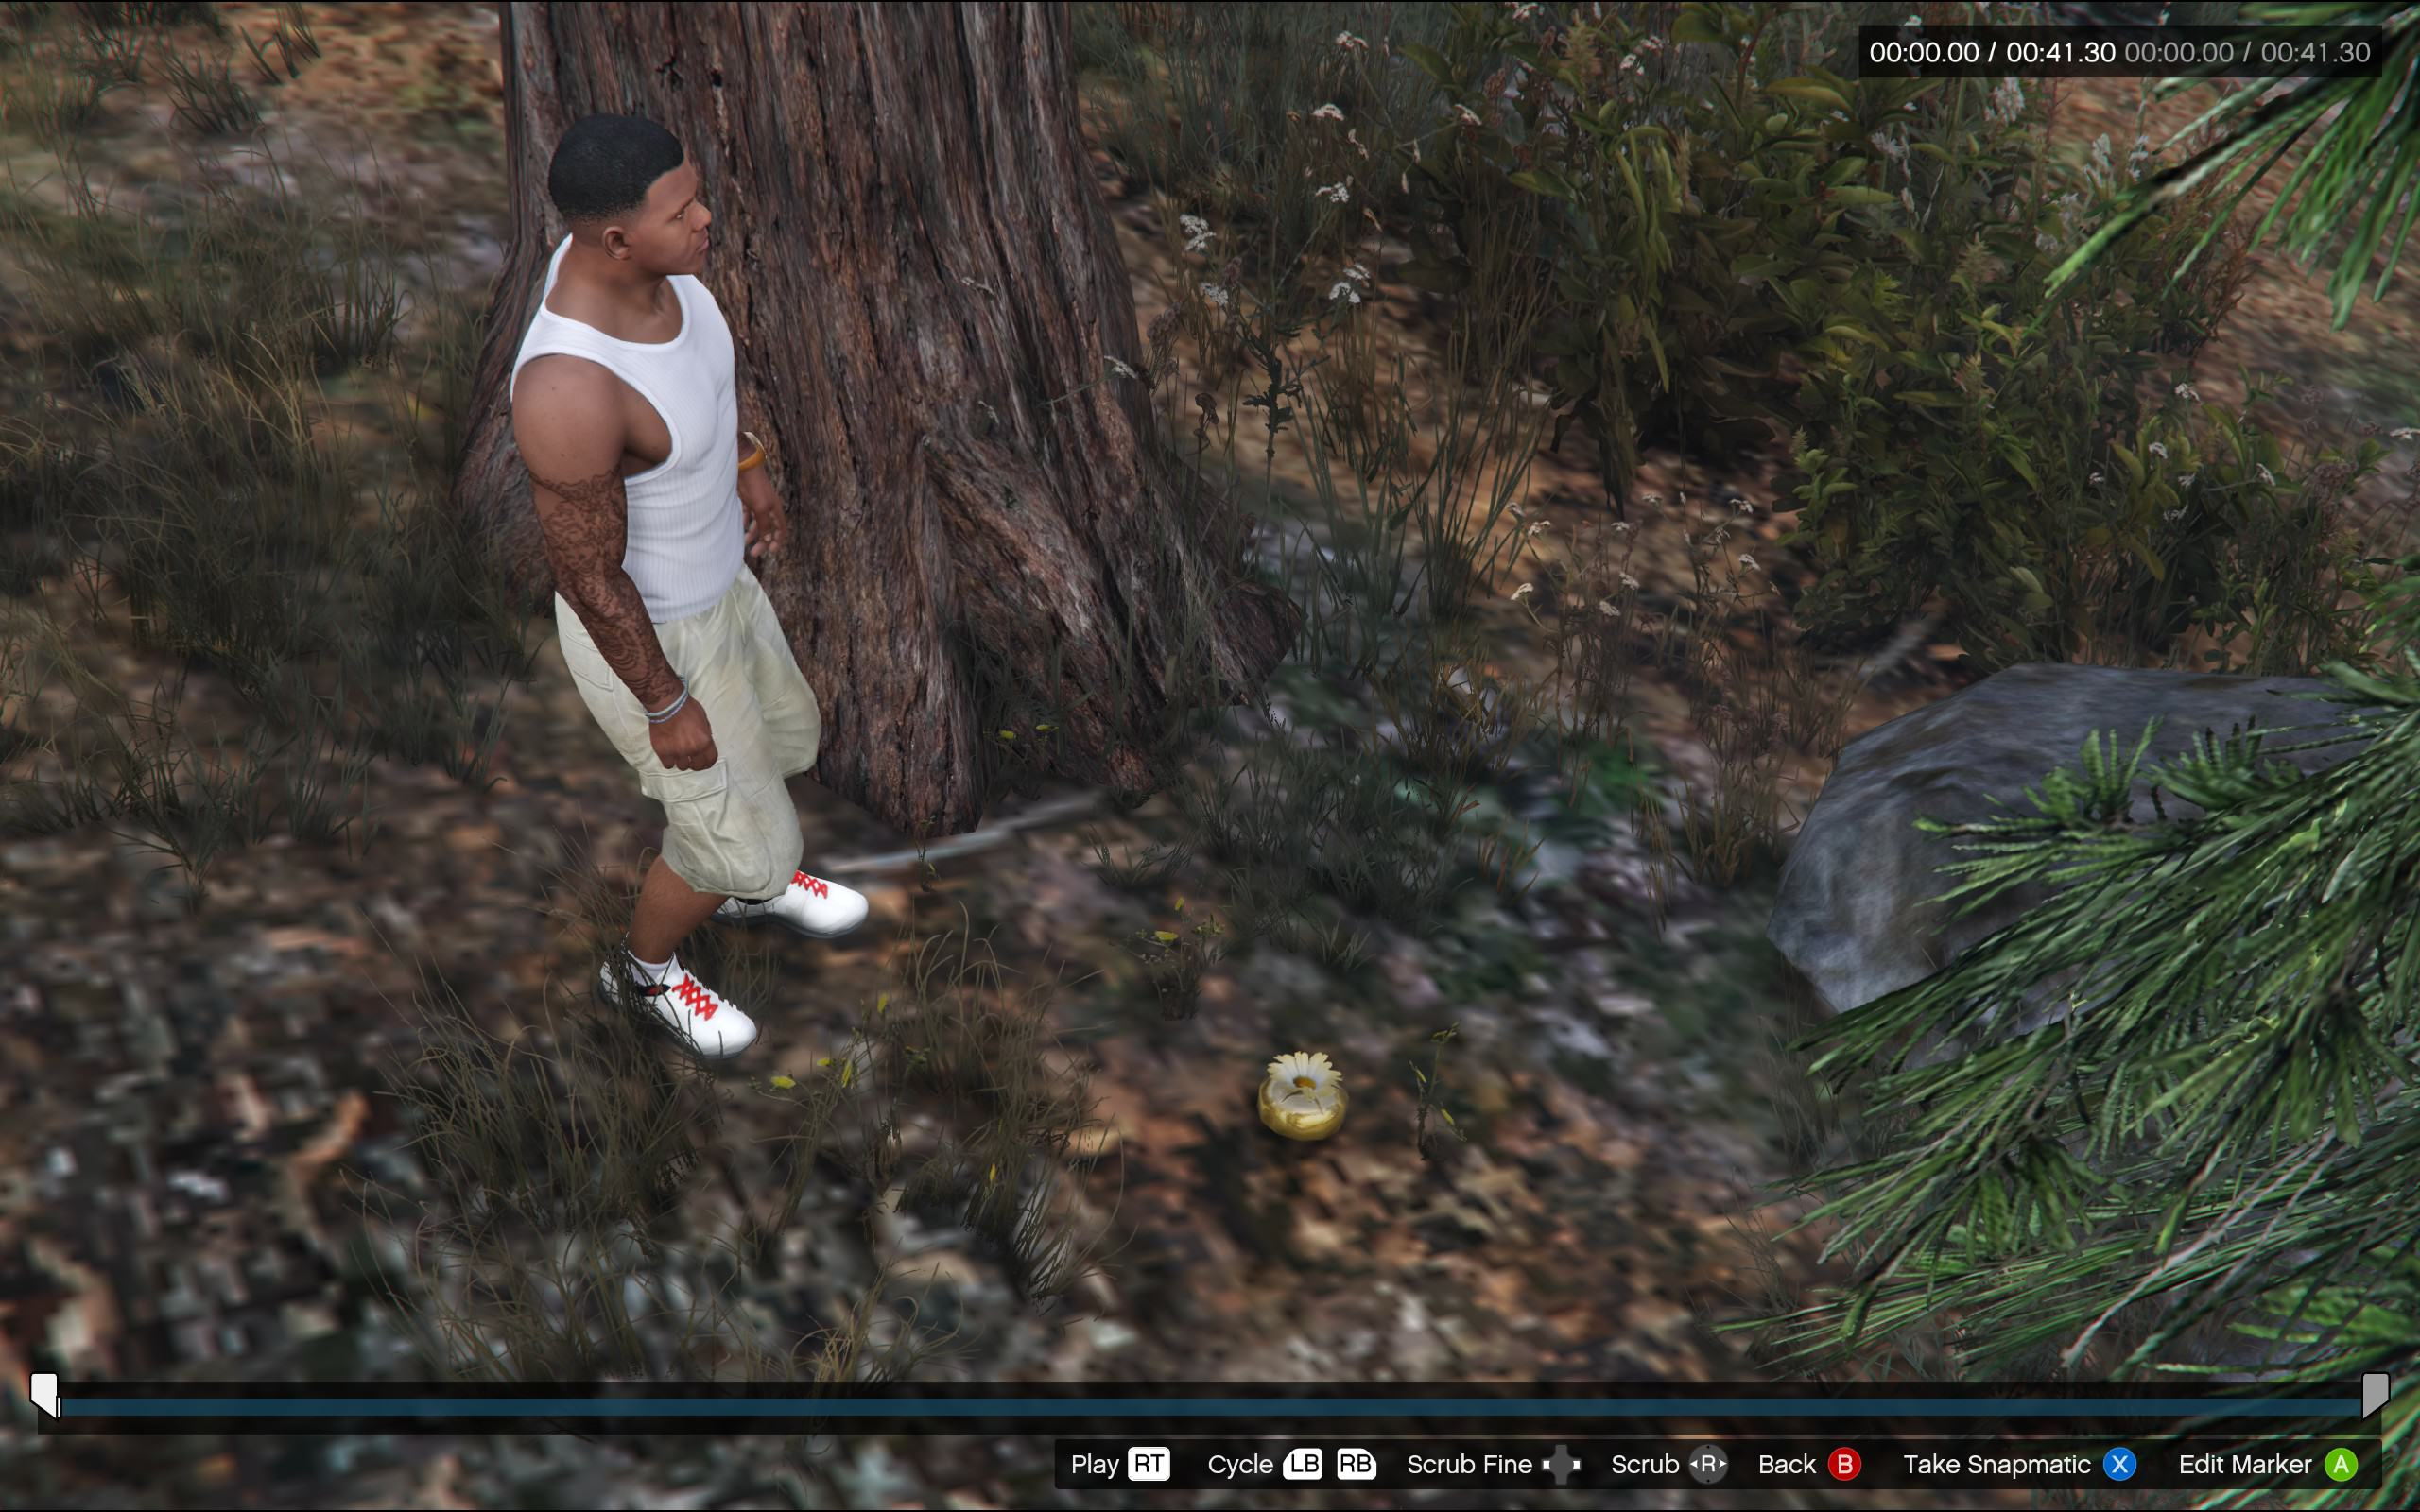 The New GTA Update Adds Bigfoot As A Playable Character k7KOmwk